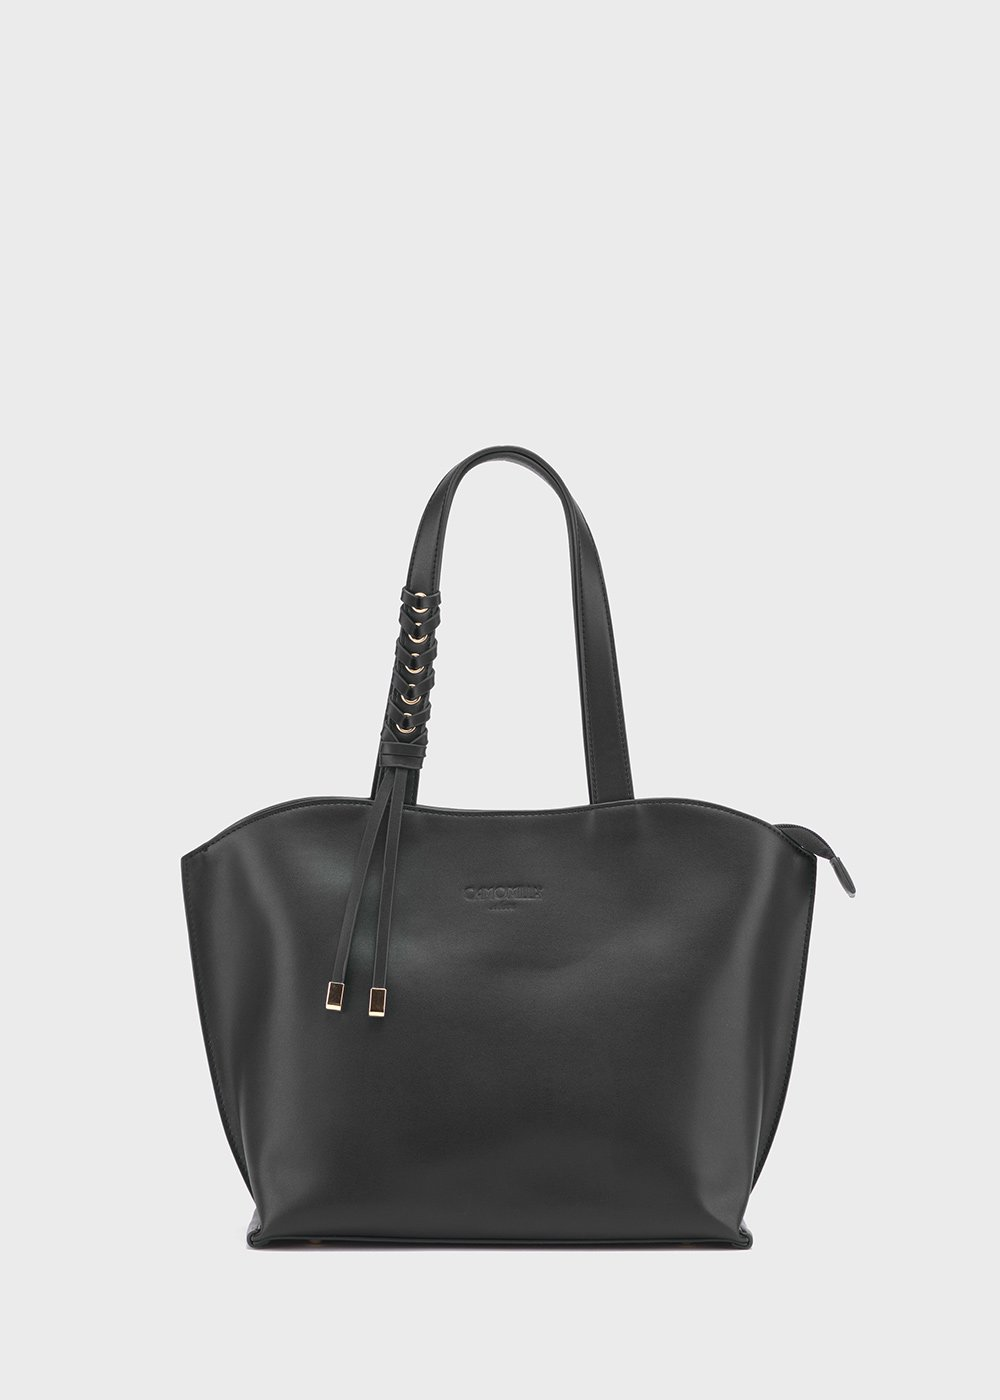 Shopping bag Belen in eco pelle - Black - Donna